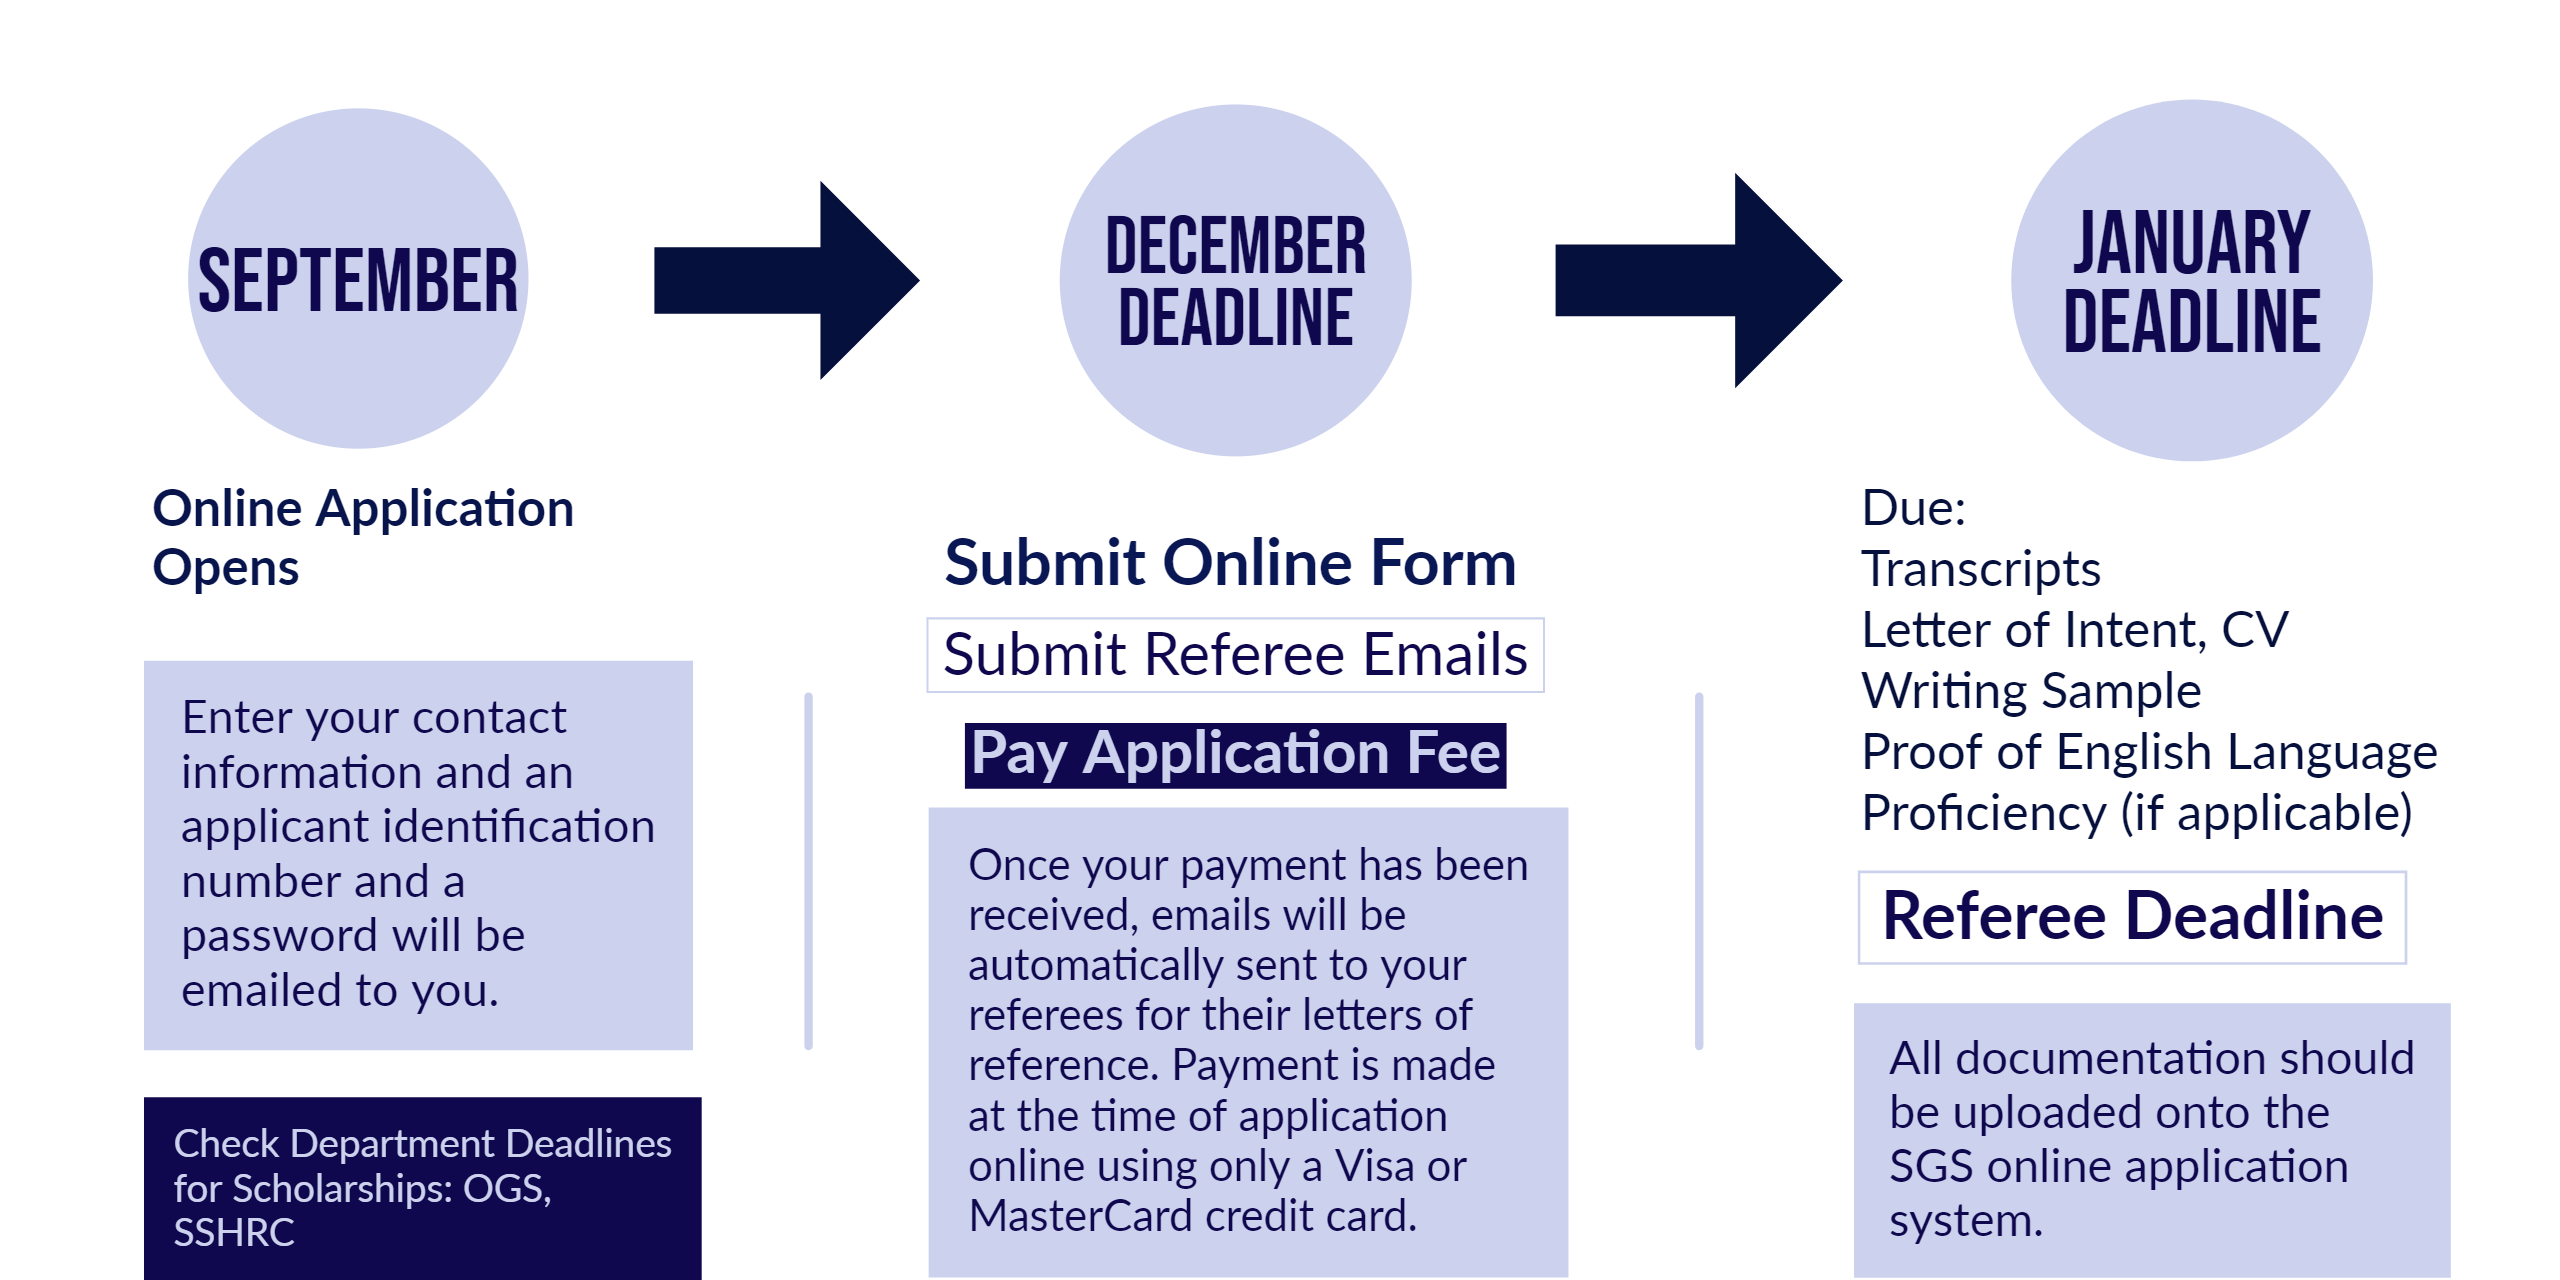 Timeline: December Deadline, Pay Application; January Deadline, Upload Supporting Documents